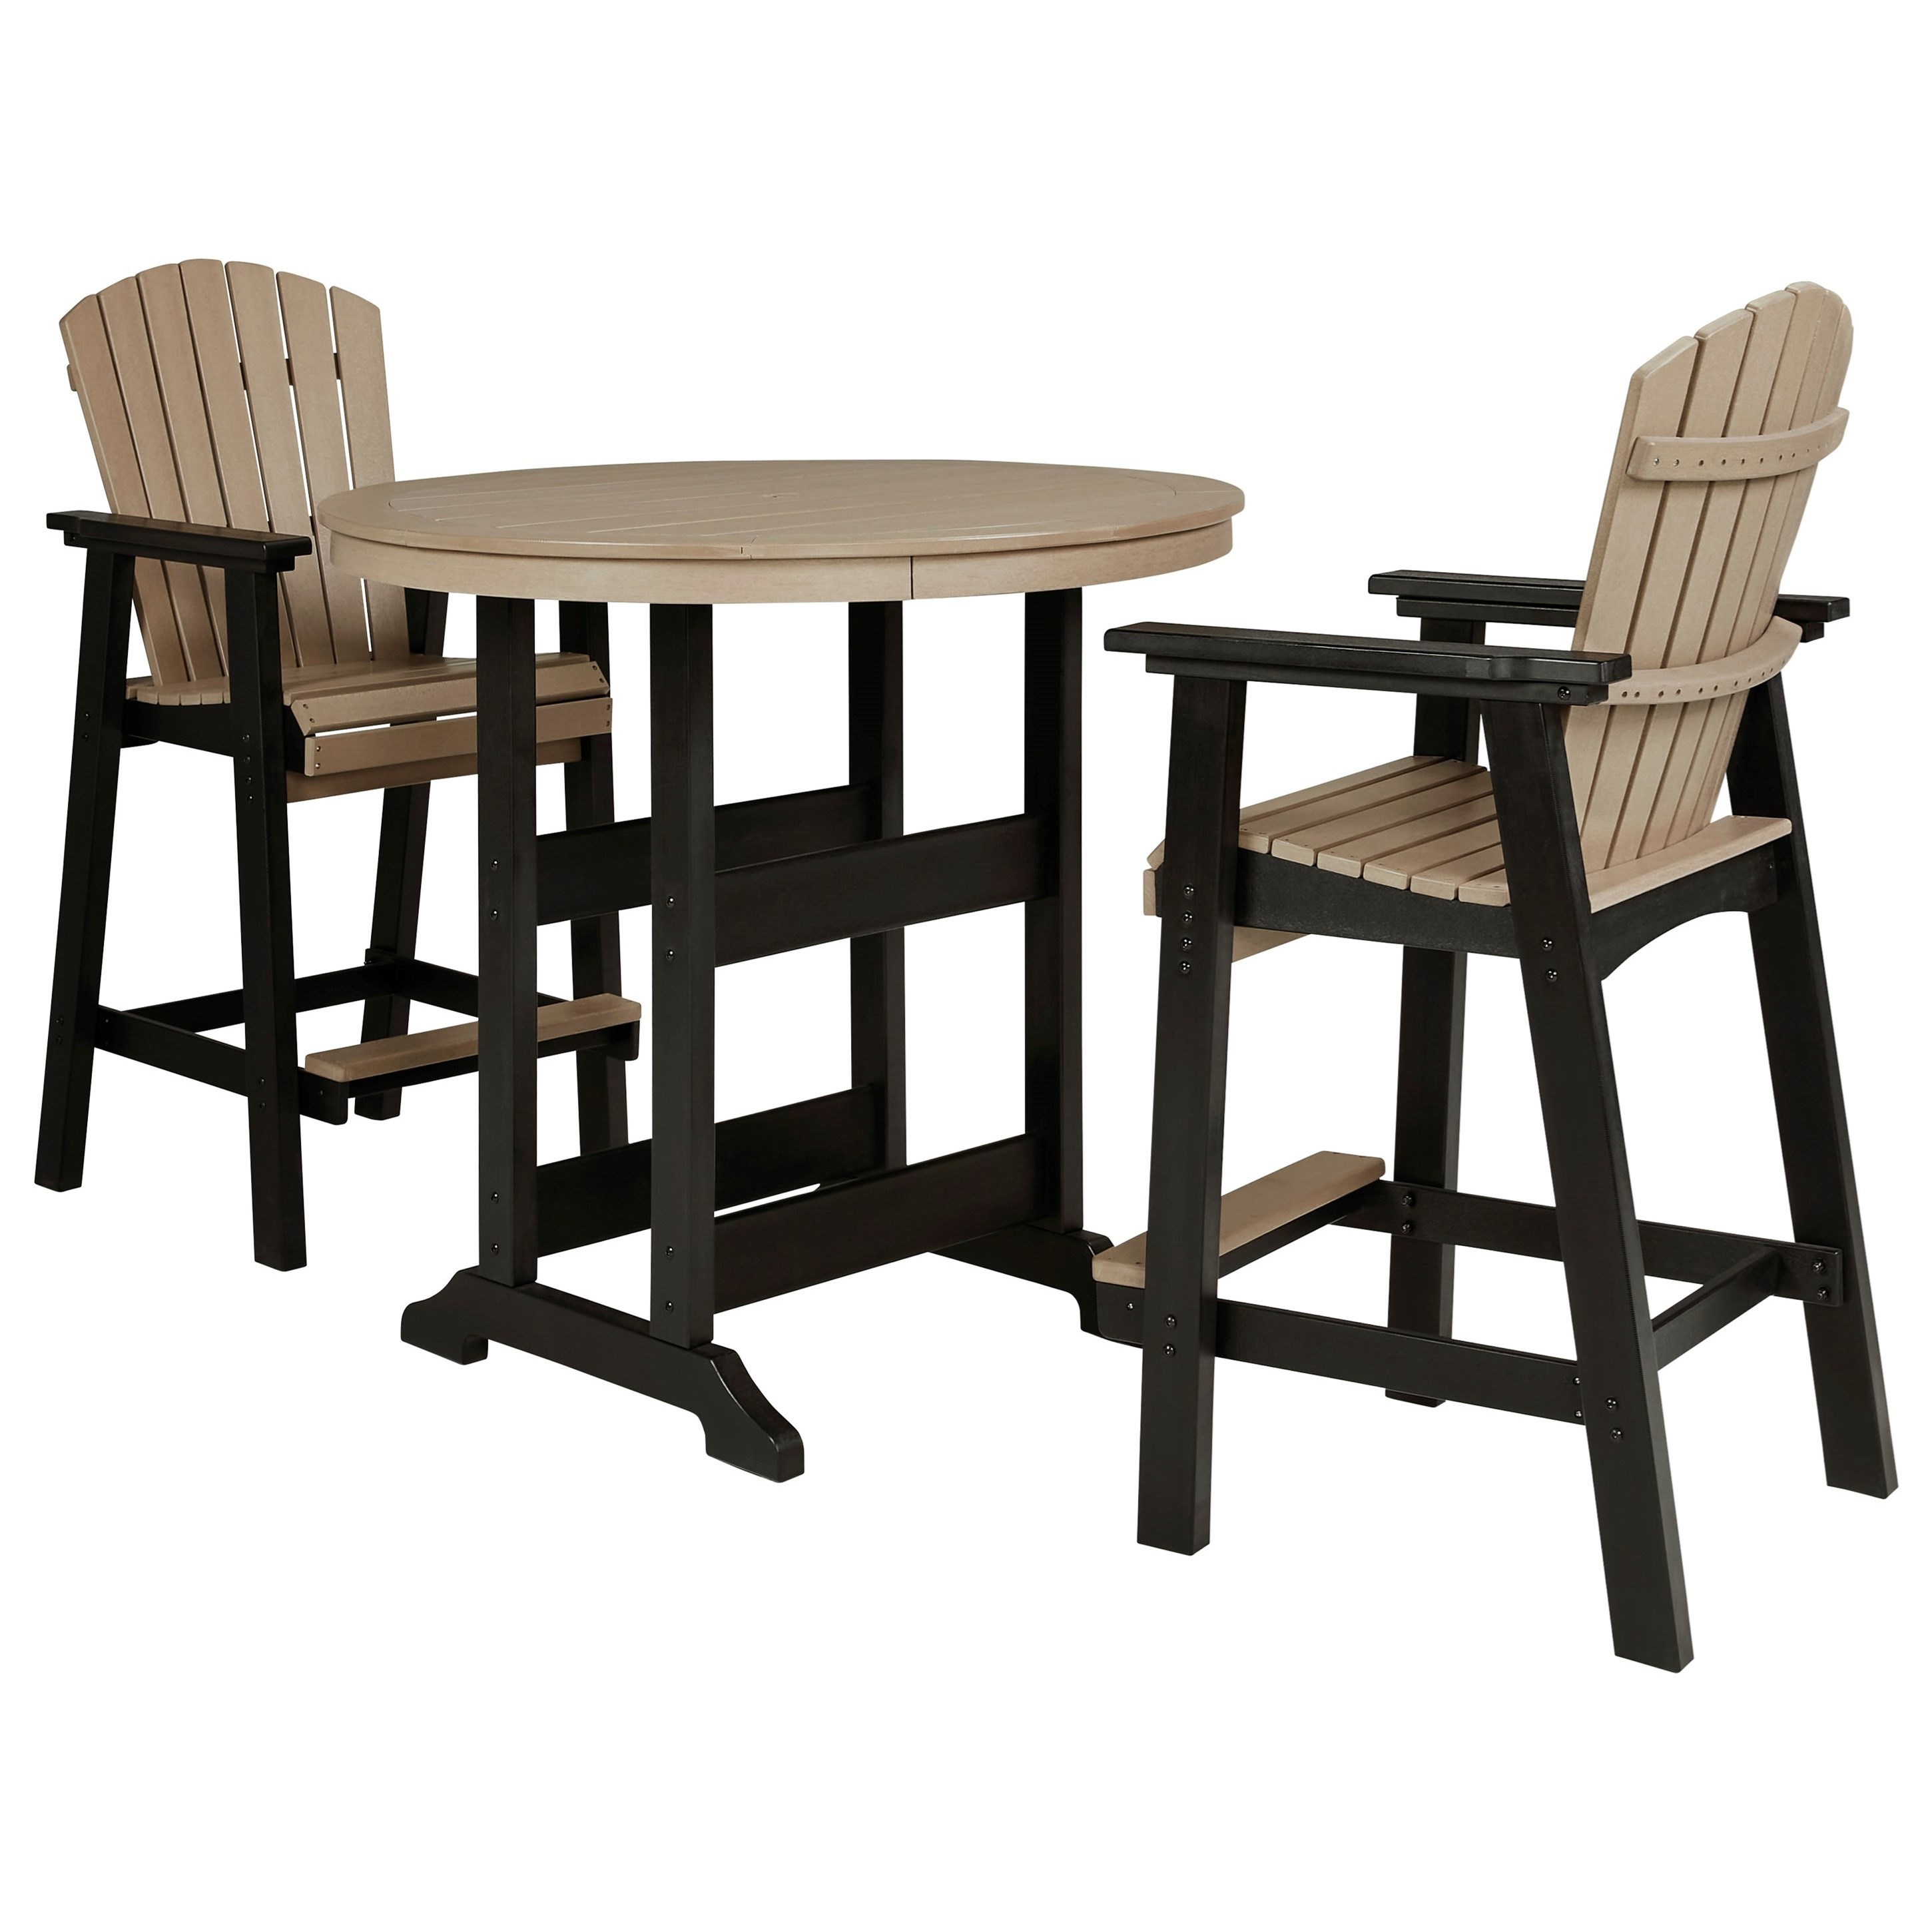 Fairen Trail 3-Piece Round Bar Table Set by Signature Design by Ashley at Value City Furniture